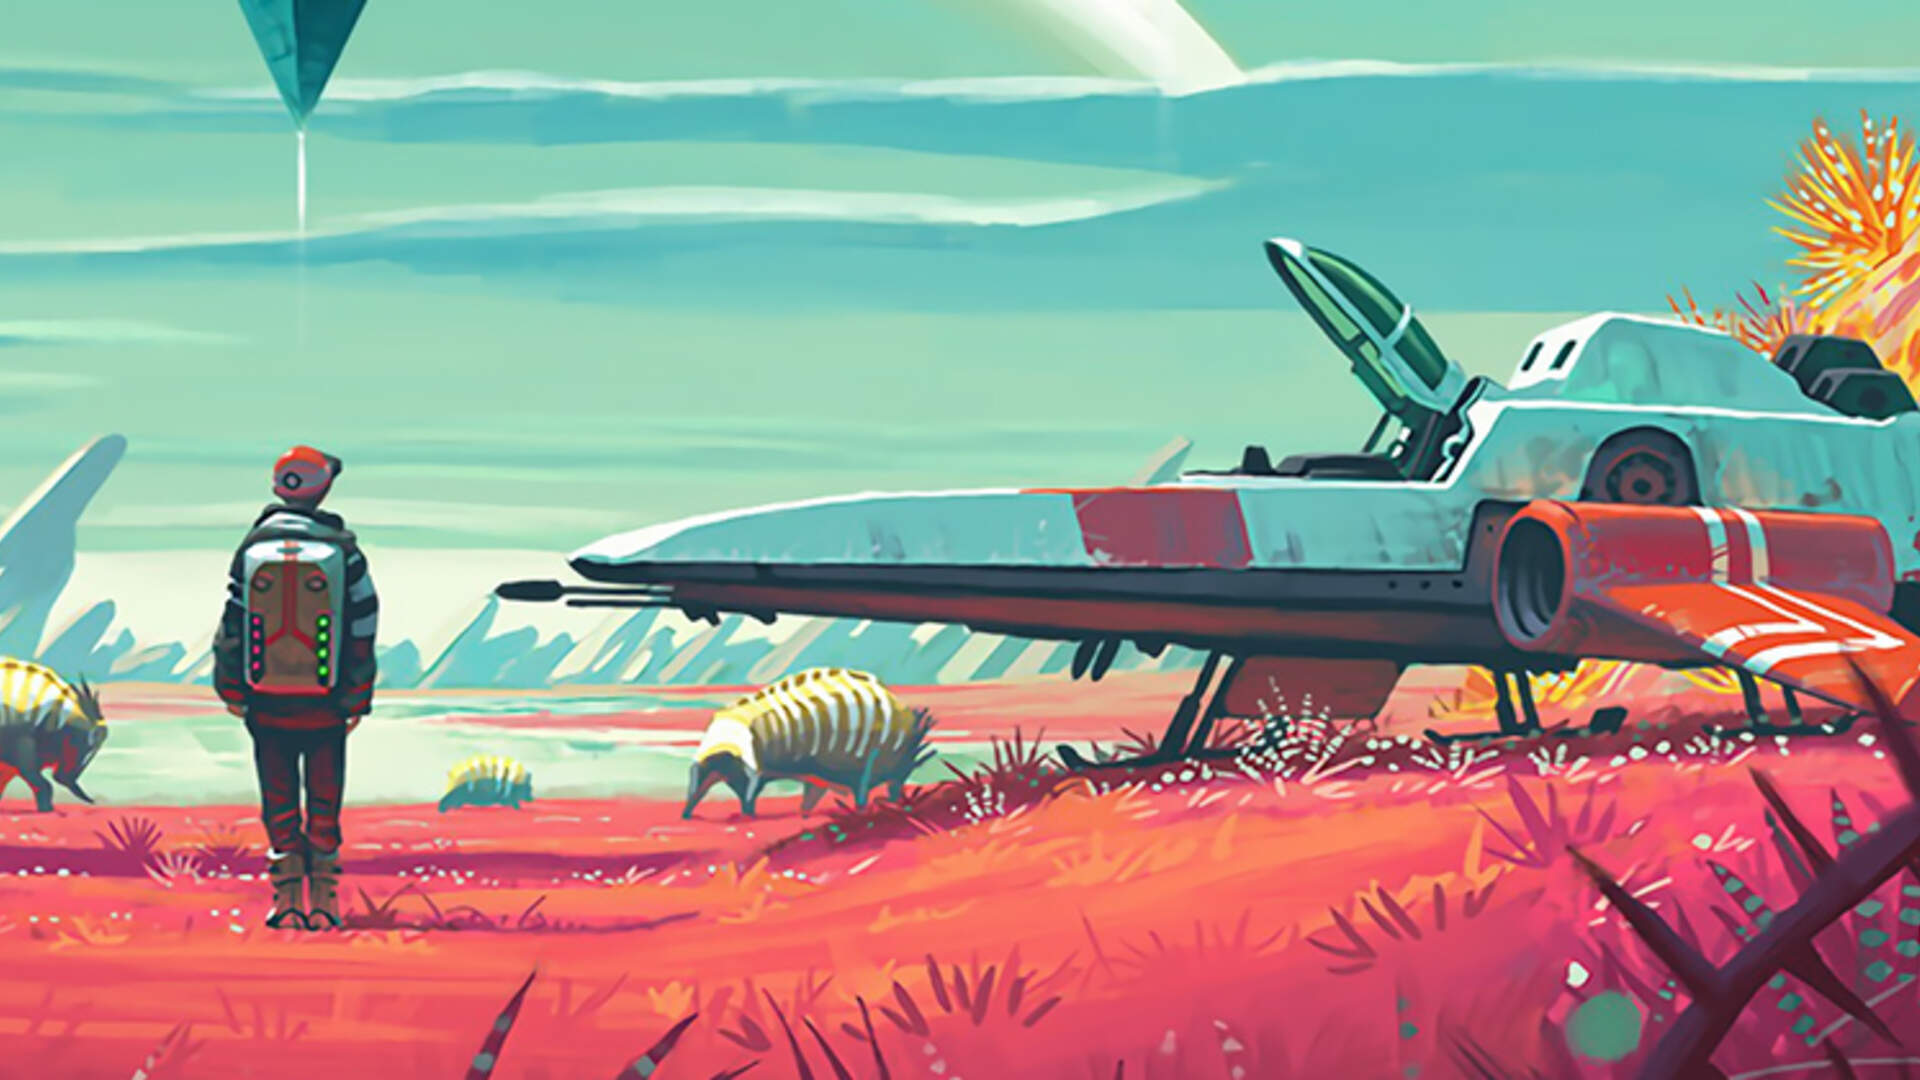 I Really Want More Games Like No Man's Sky